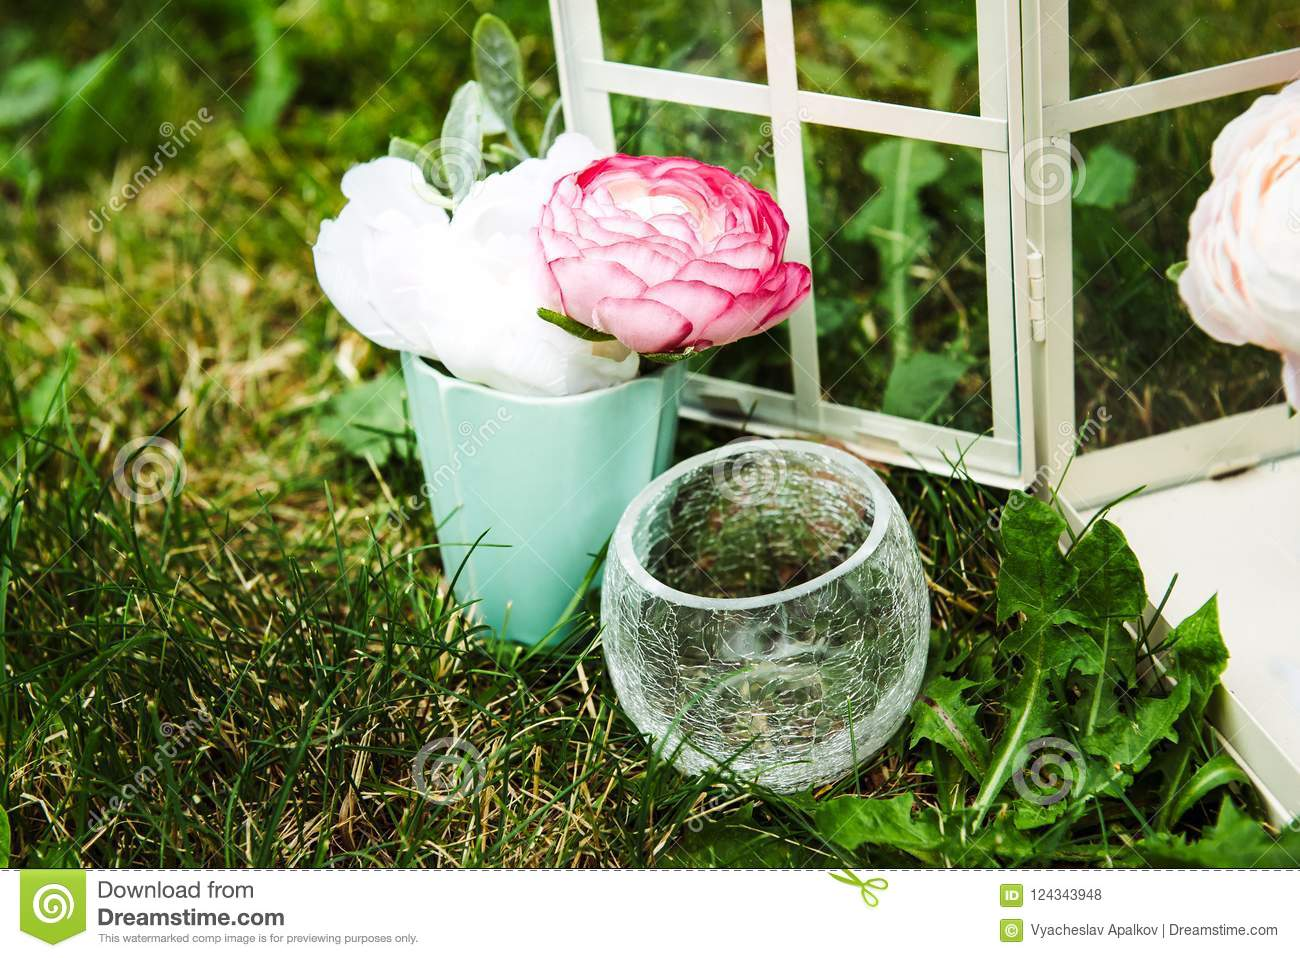 193 & Picture Of Flowers In Cute Small Vases Standing Stock Photo ...